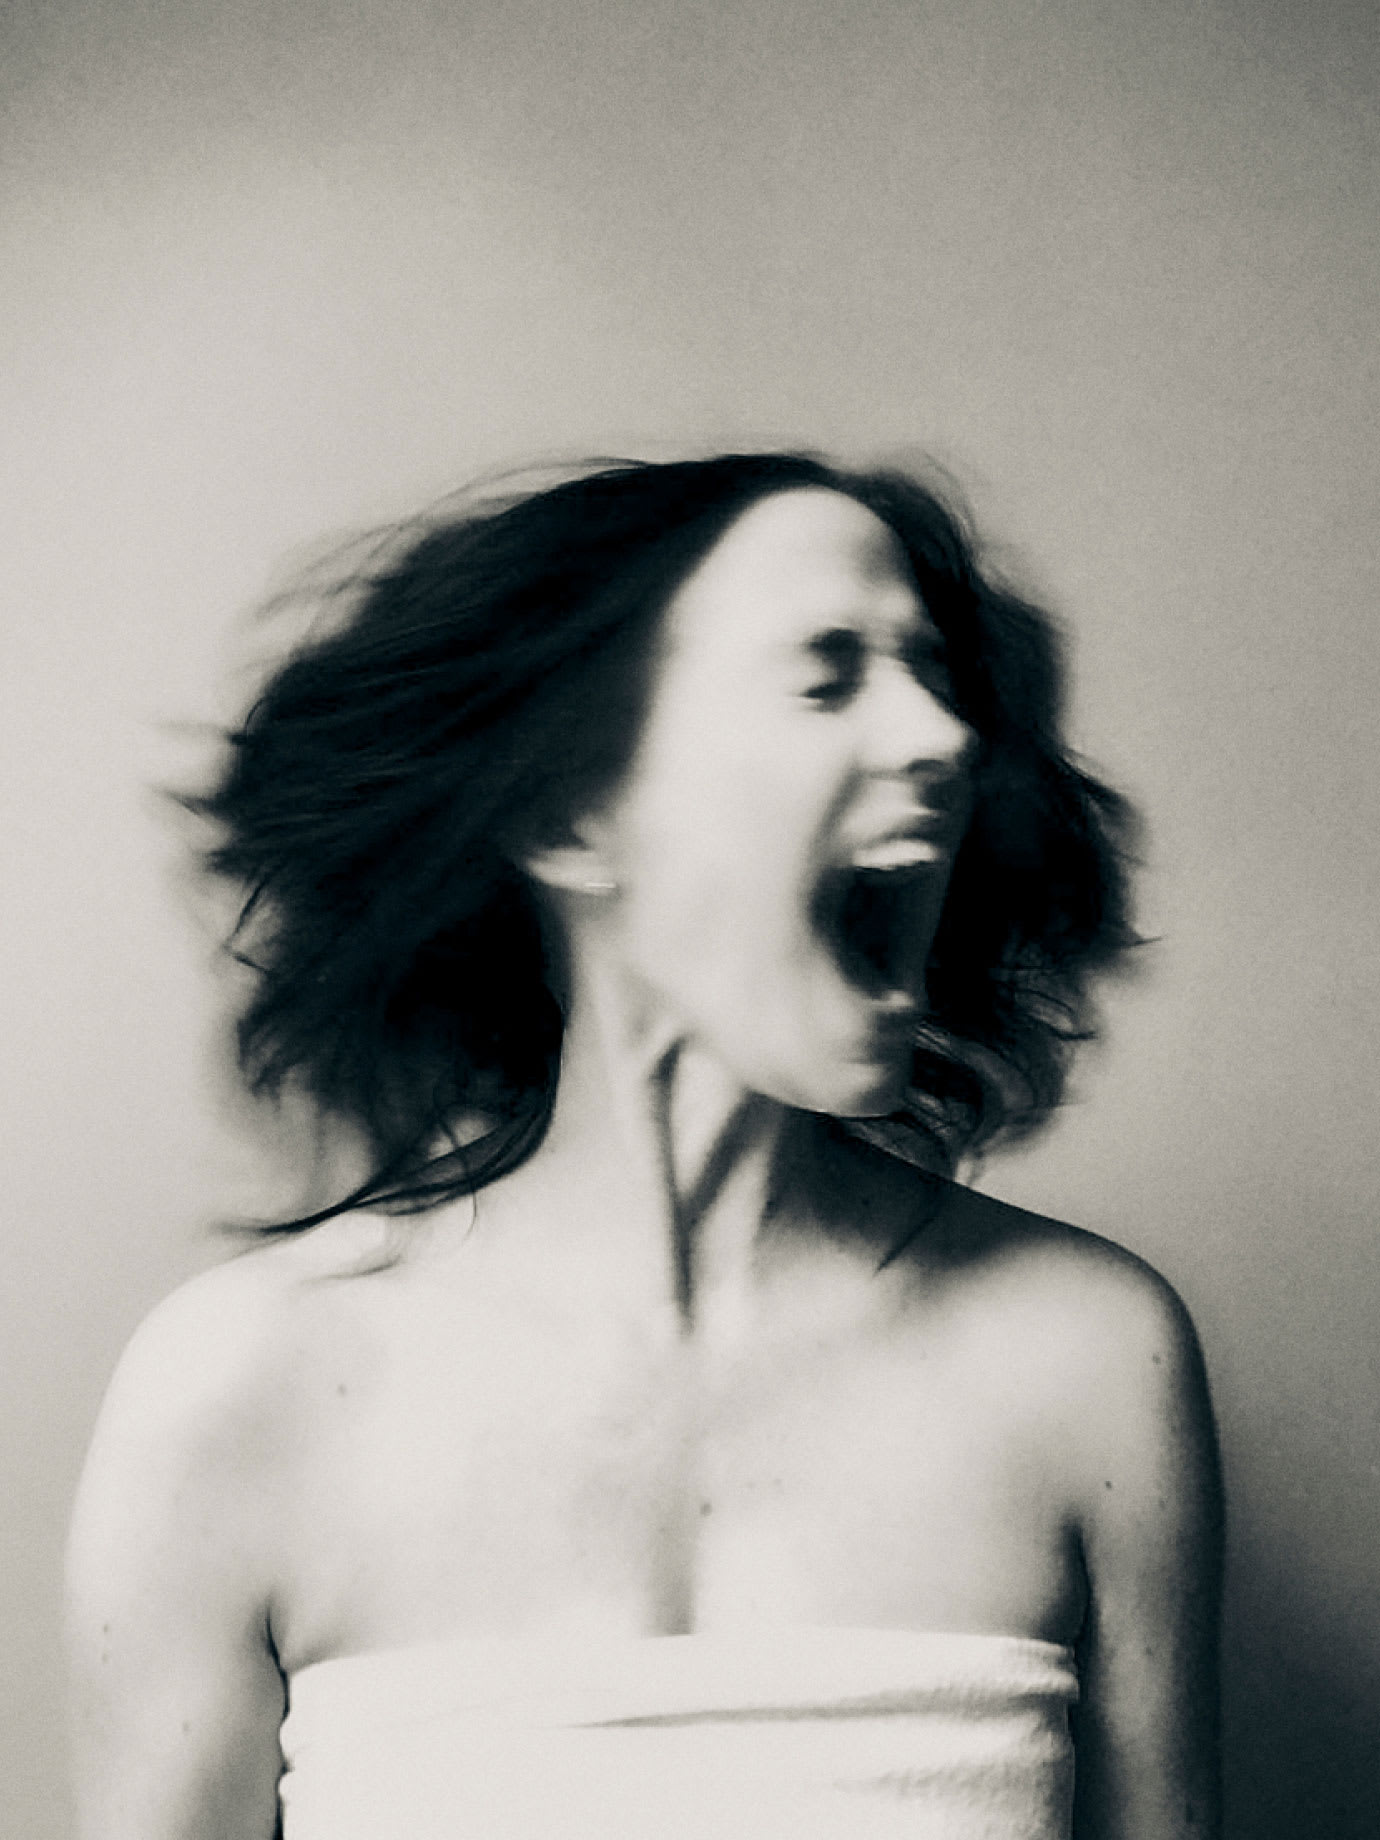 A woman screaming while shaking her head.